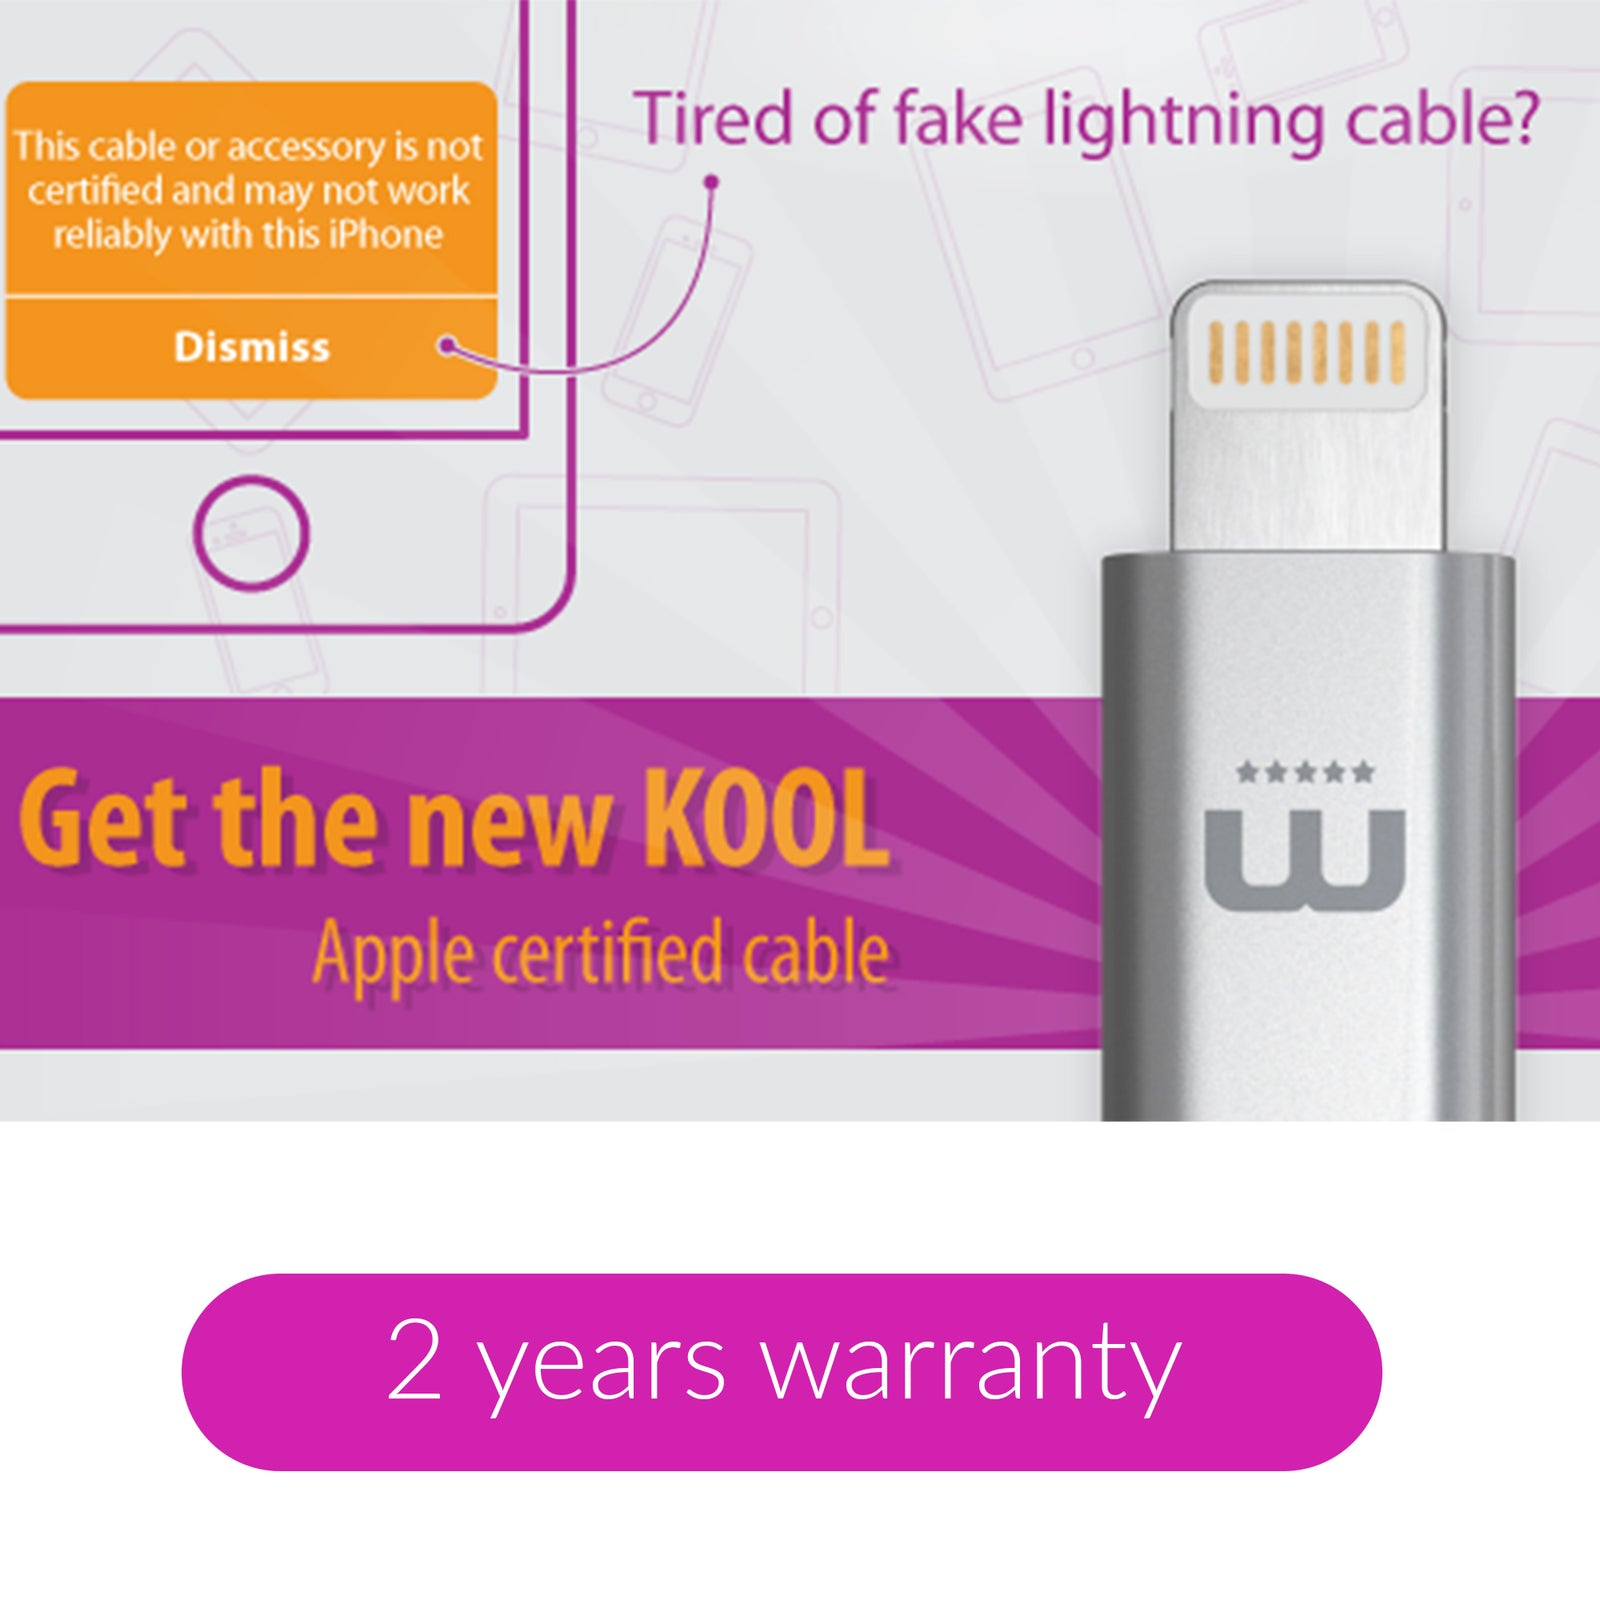 KOOL Apple certified ultra durable cable